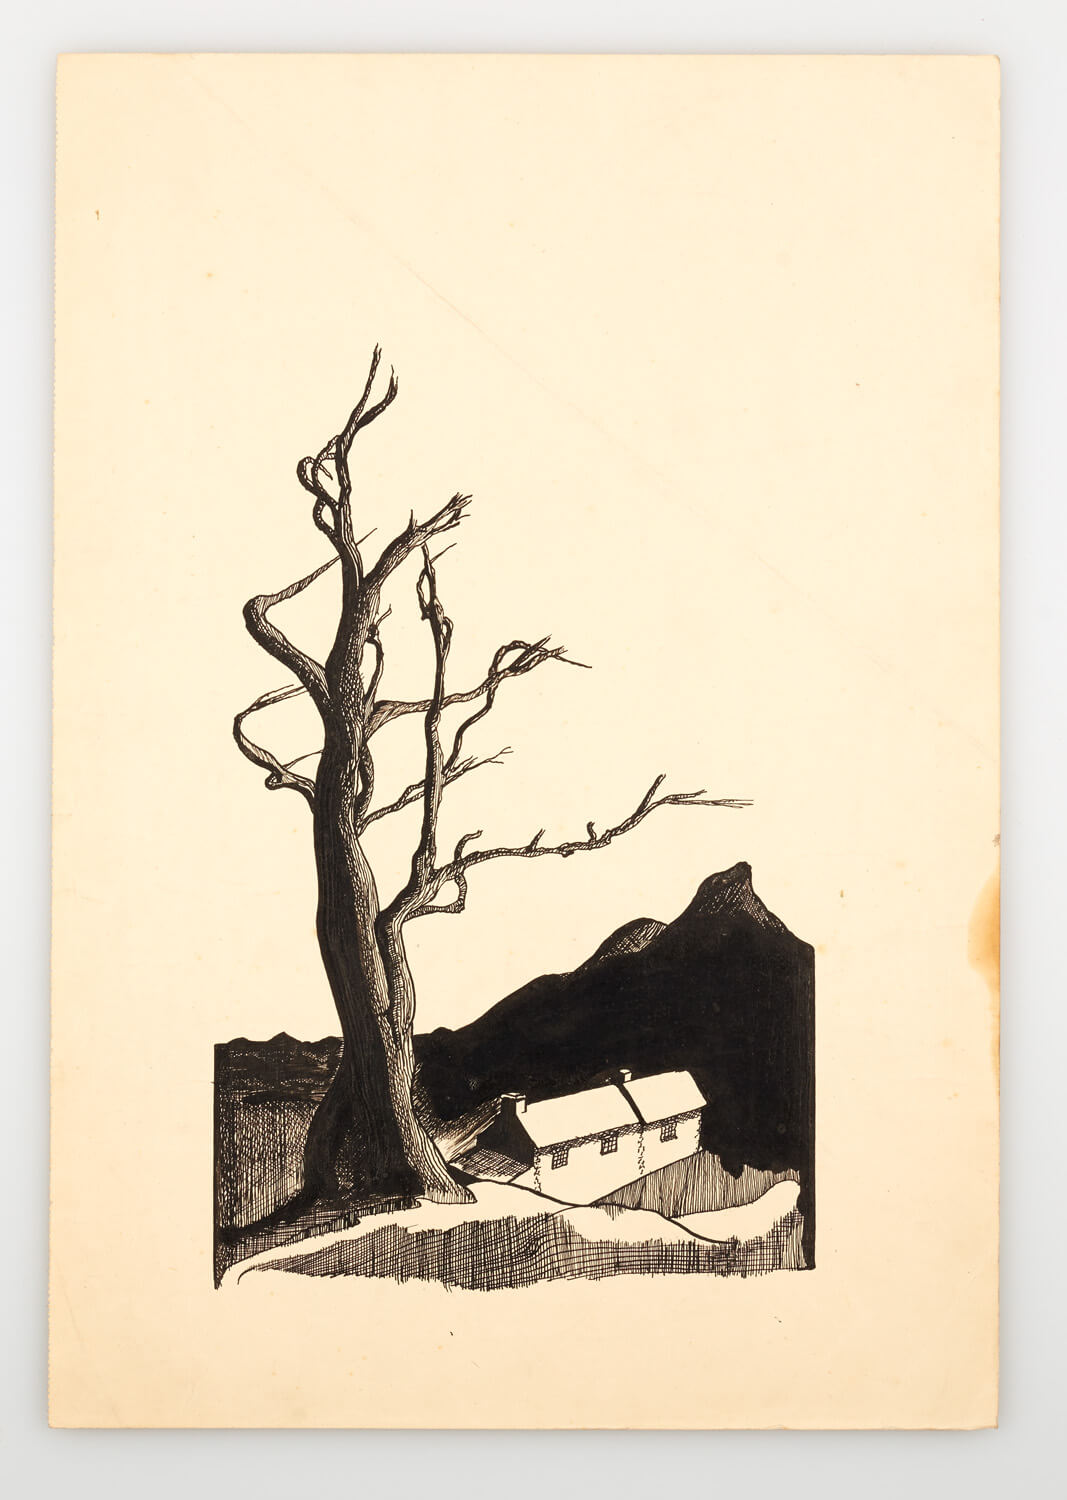 JB251 - Cornish Landscape - 1946 - 35.5 x 24.5 cm - Pen and ink